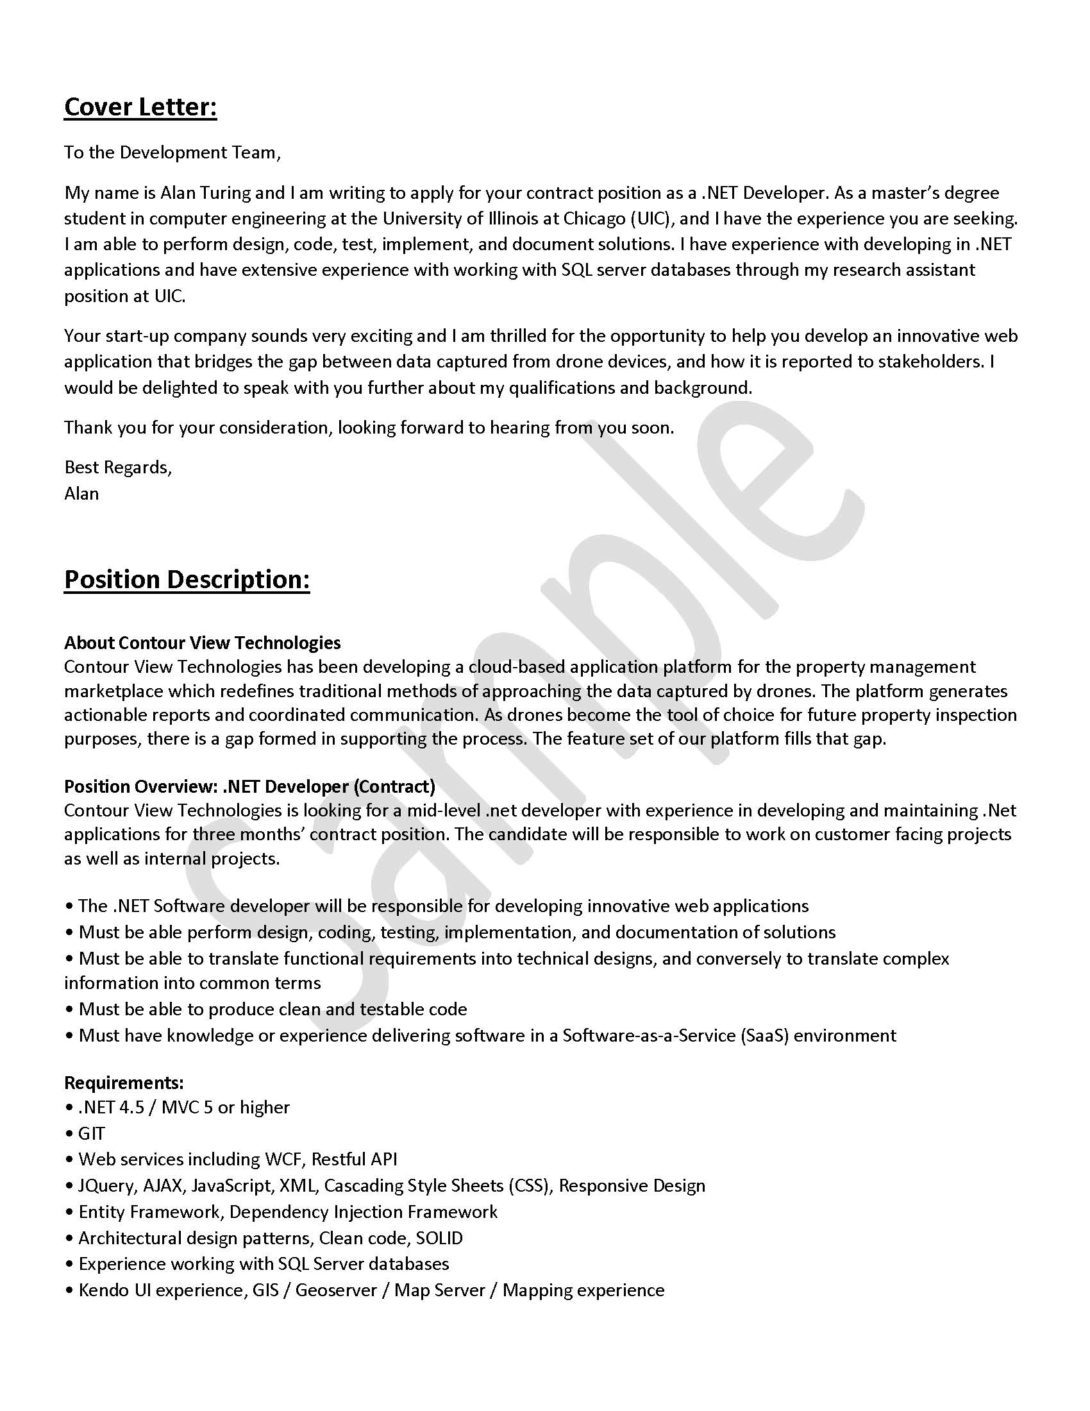 Tool Design Engineer Cover Letter Cover Letter Engineering Career Center University Of Illinois